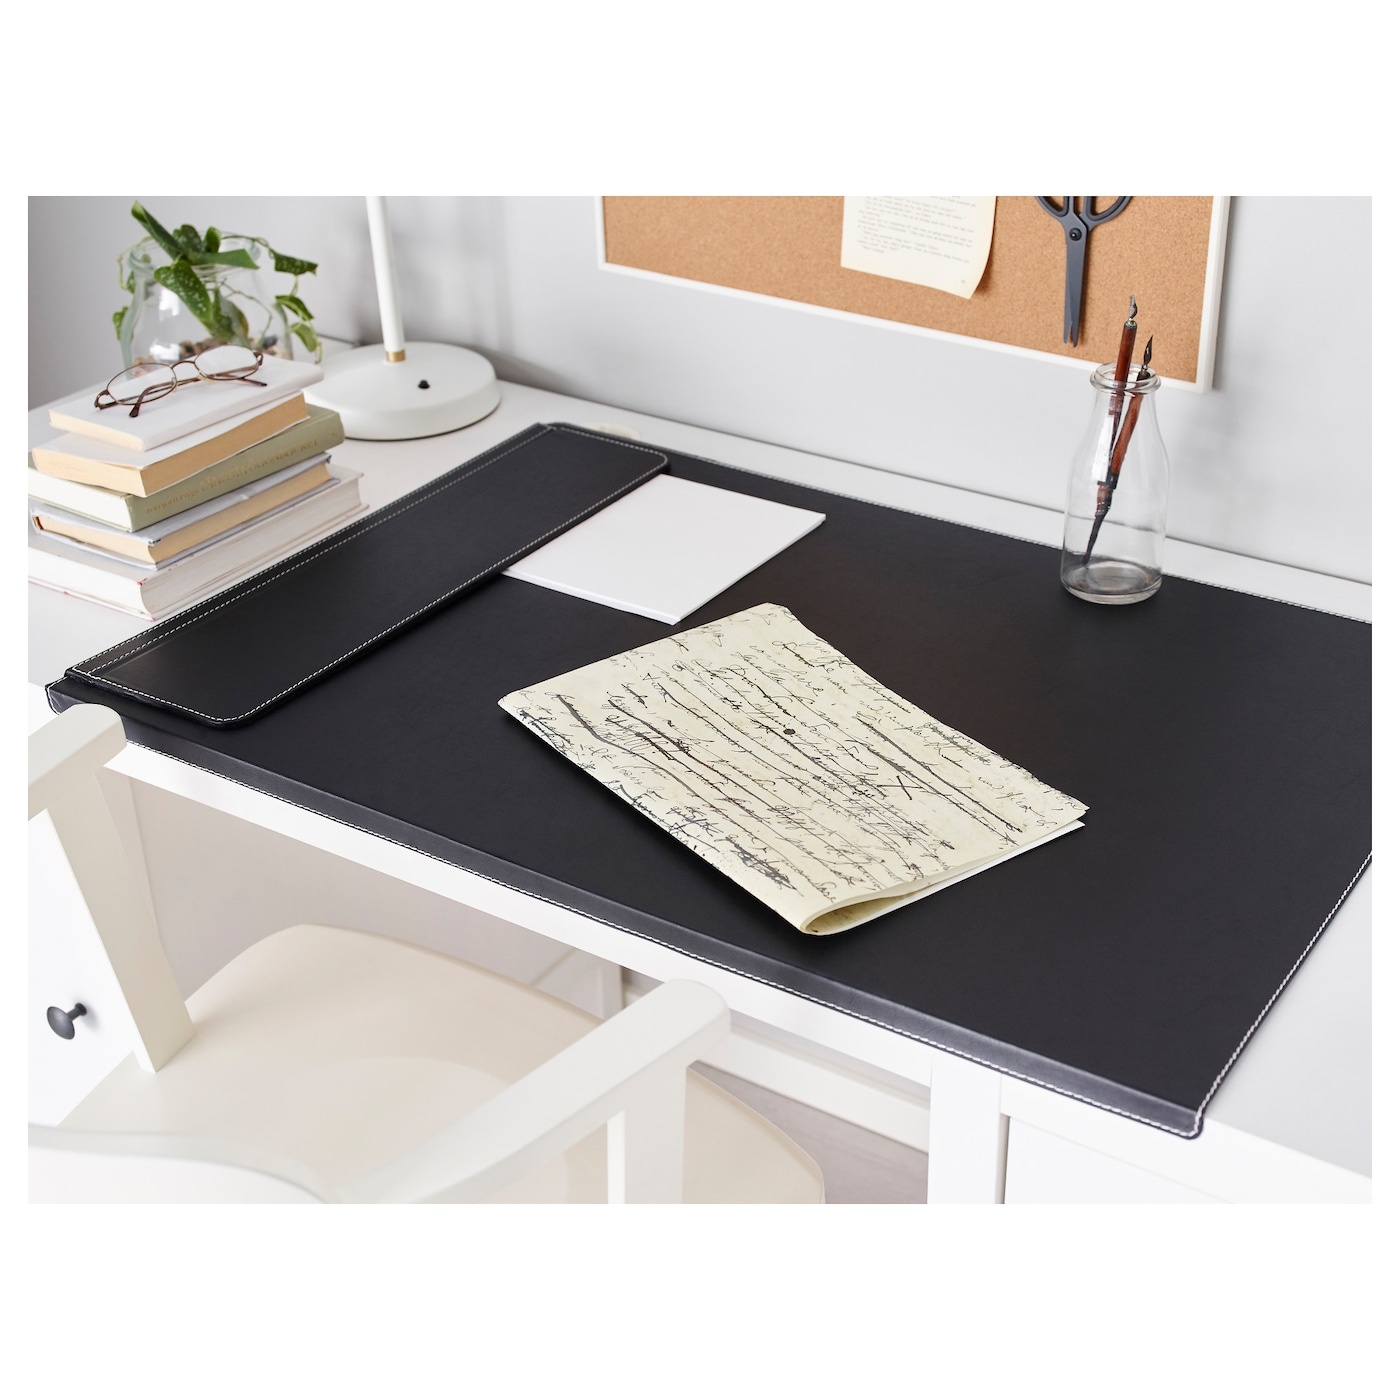 IKEA RISSLA desk pad The bent front edge keeps the desk pad in place.